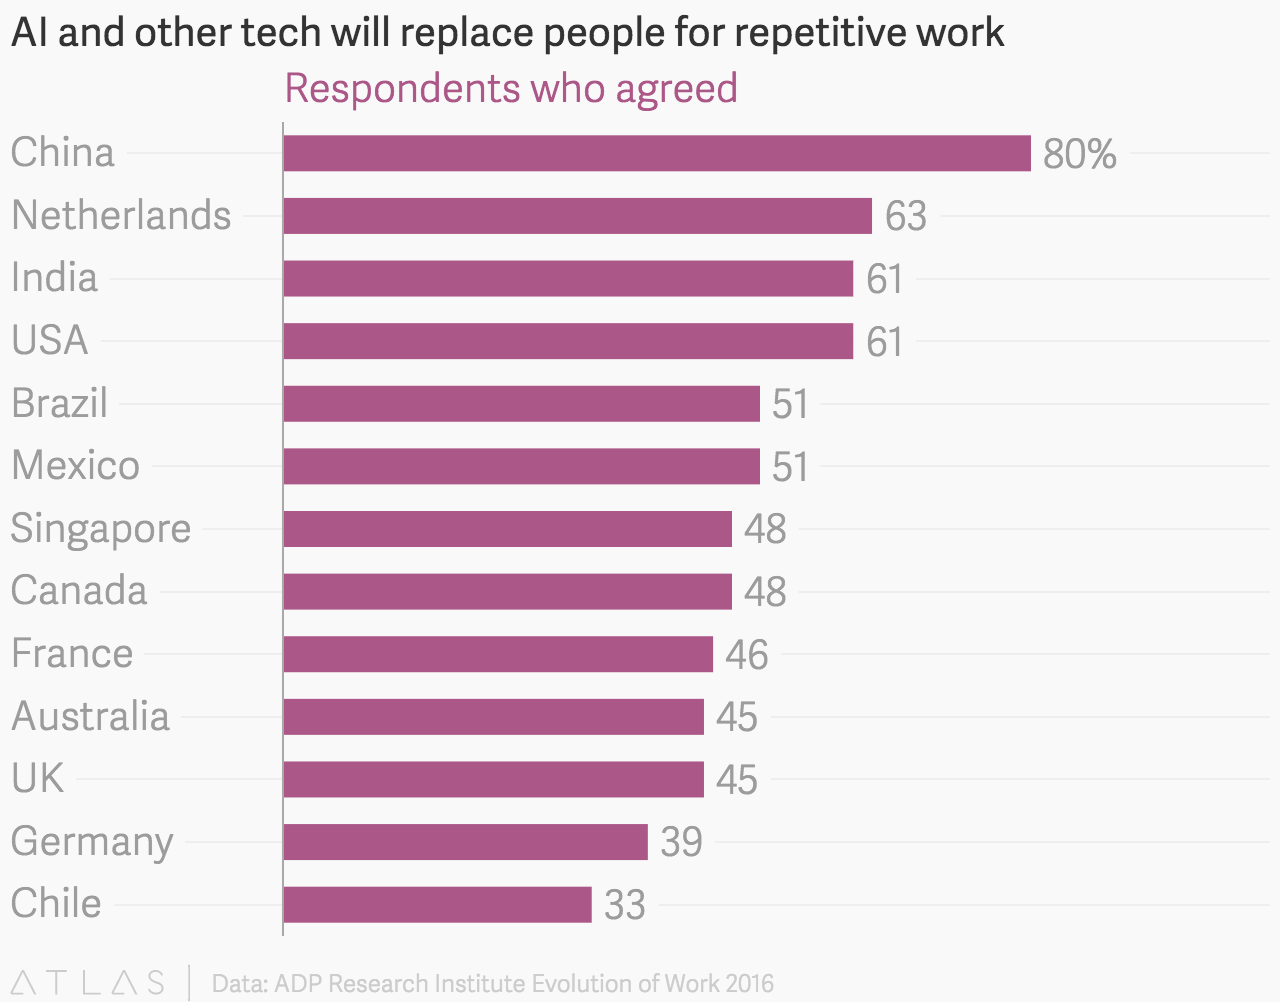 AI and other tech will replace people for repetitive work